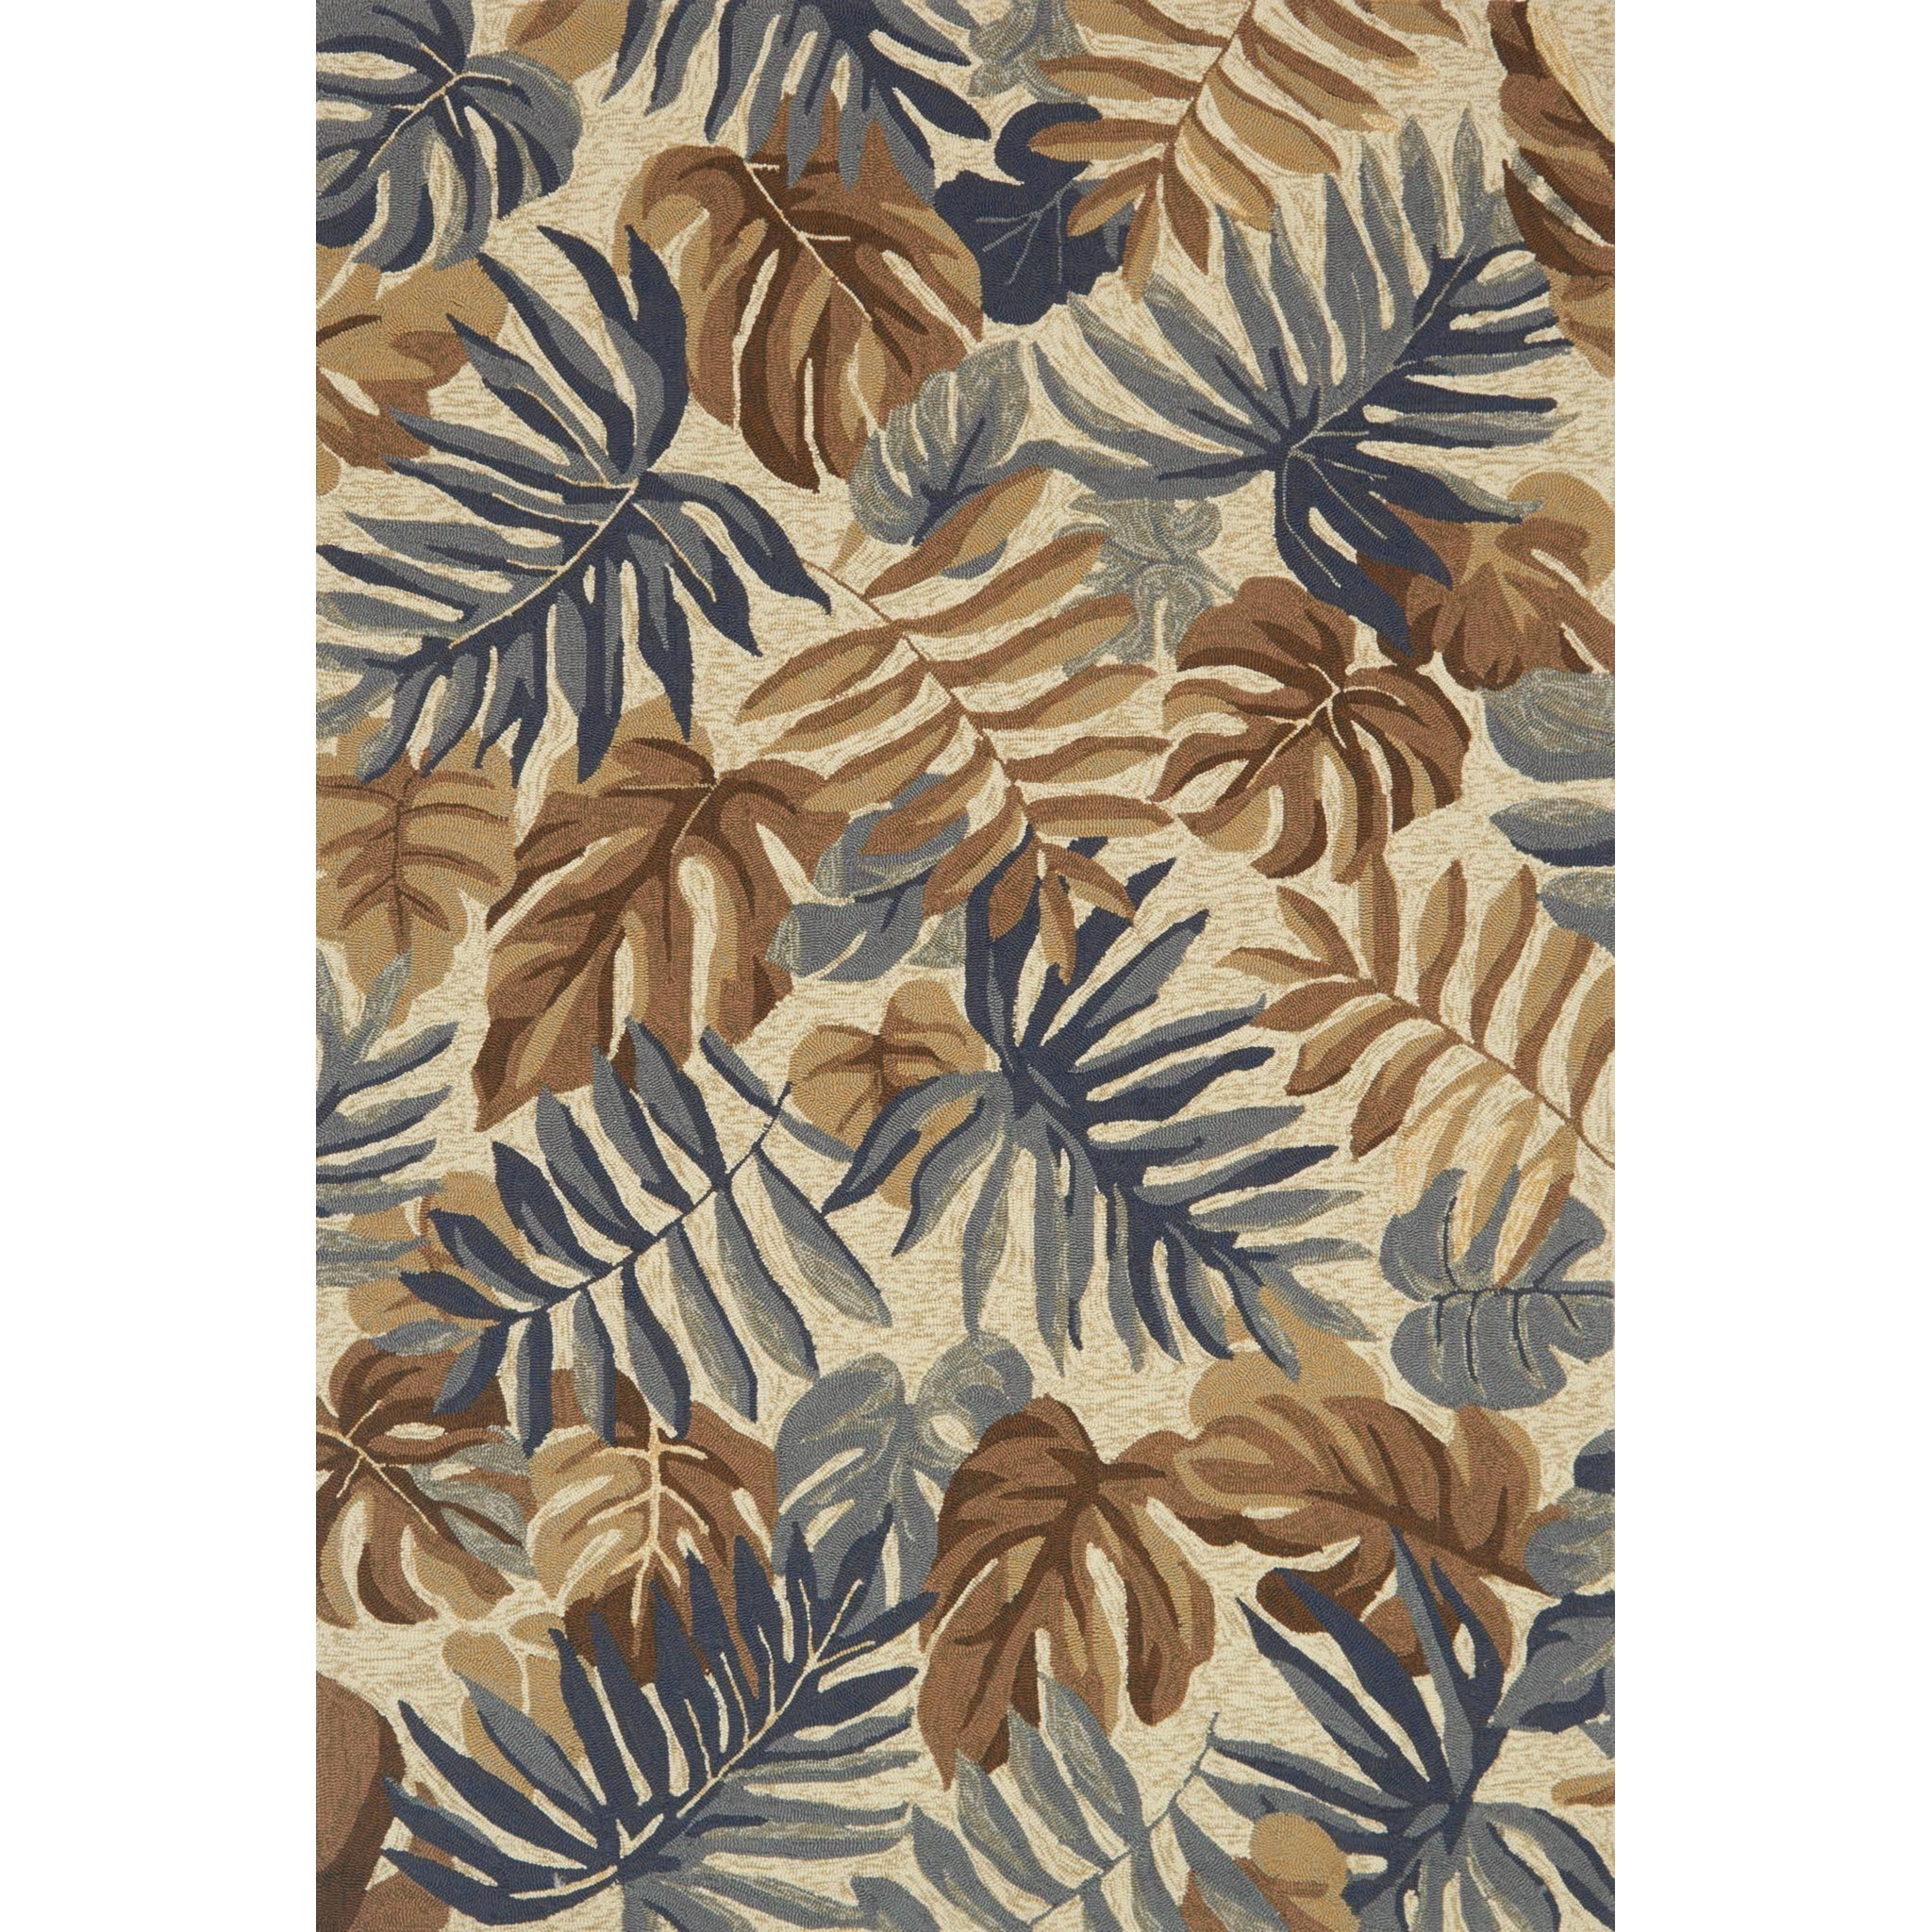 "Venice Beach 5'-0"" x 7'-6"" Area Rug by Loloi Rugs at Story & Lee Furniture"